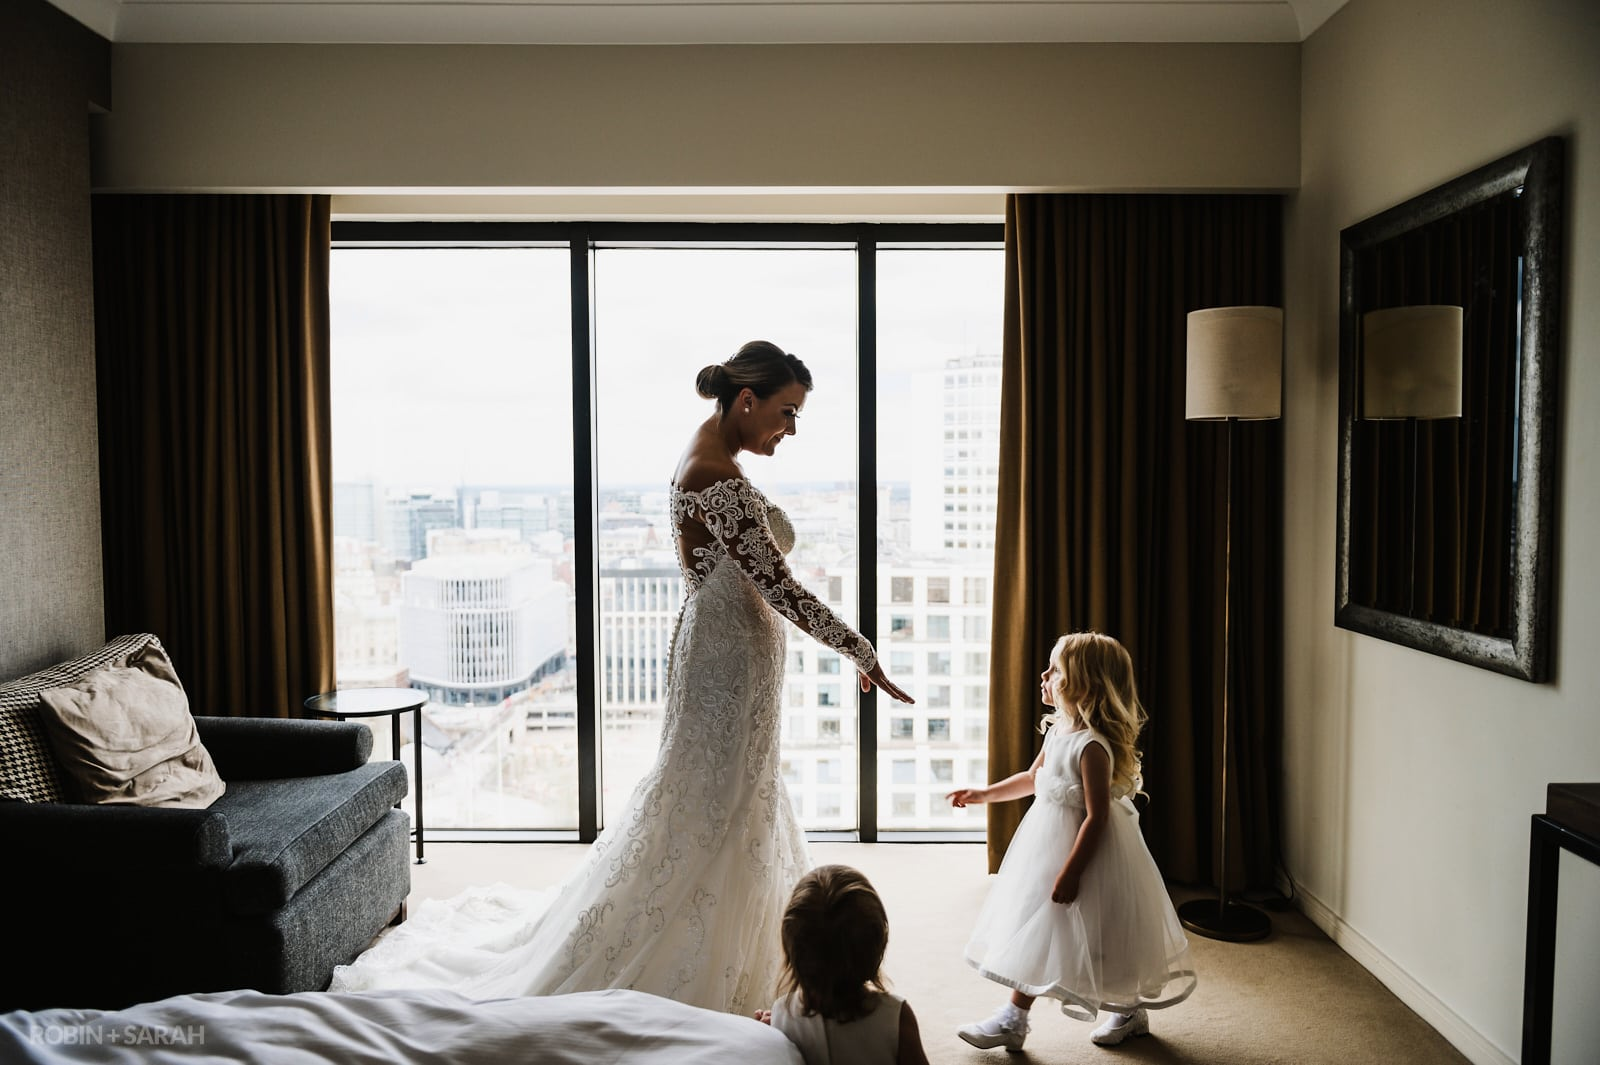 Bride holds hand out to young flowergirl as they prepare for wedding in hotel room